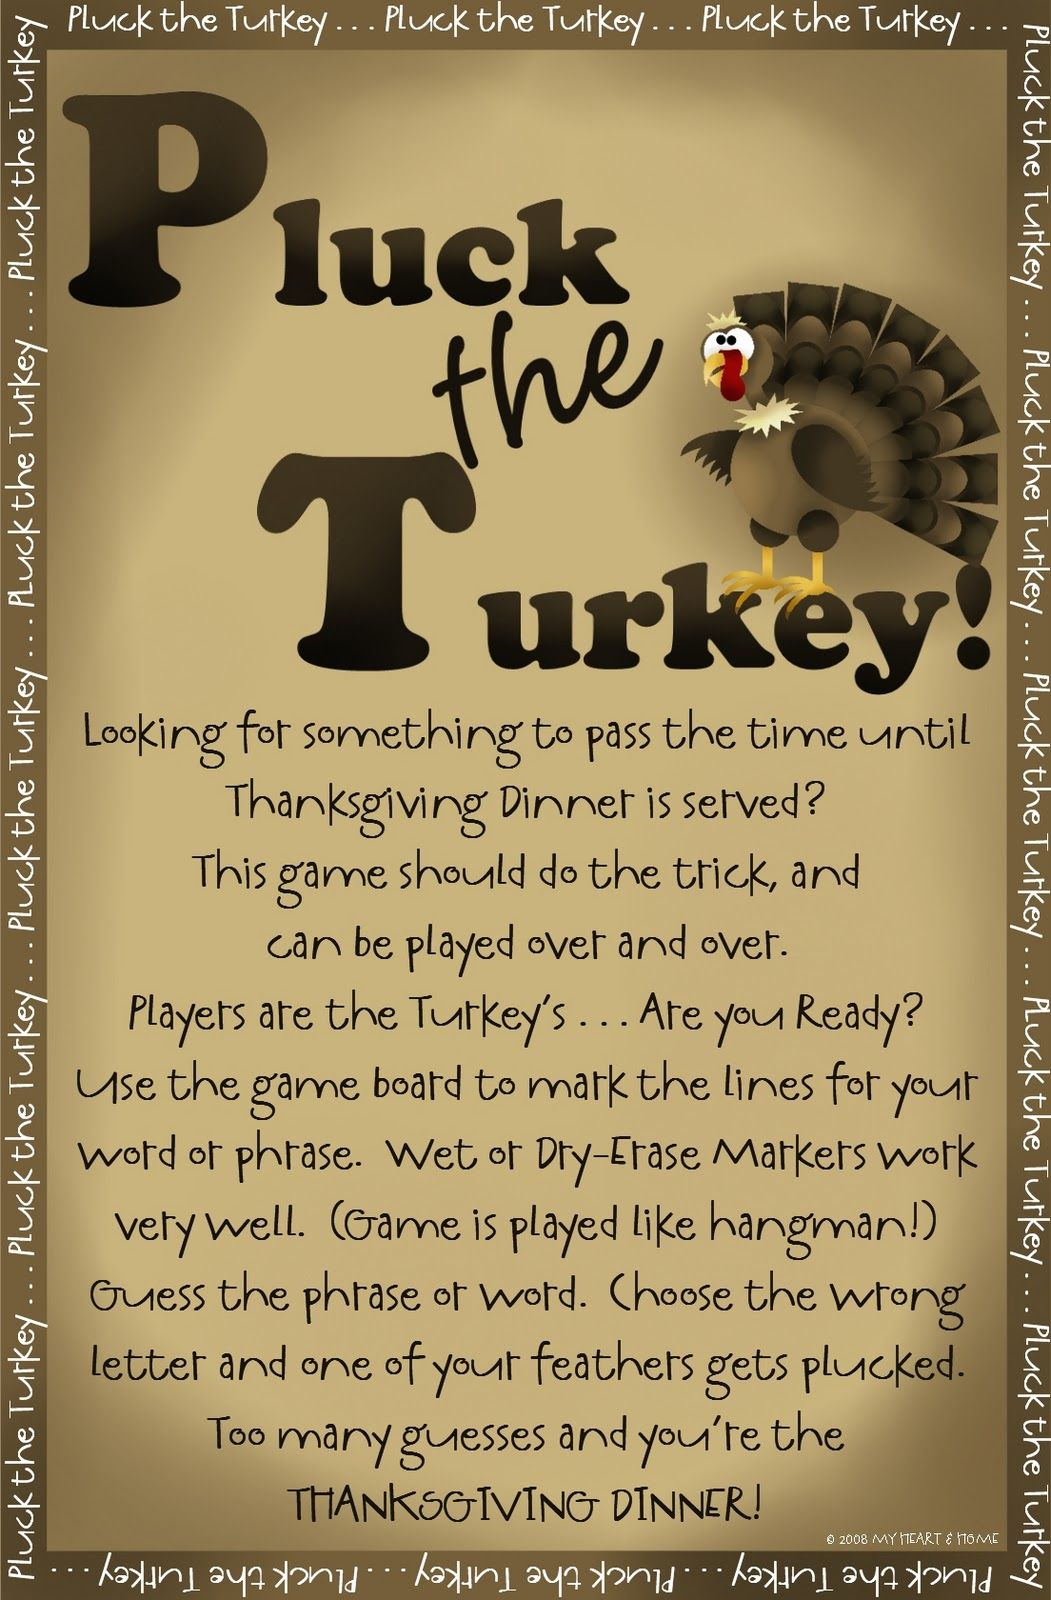 Pluck E Turkey With Images